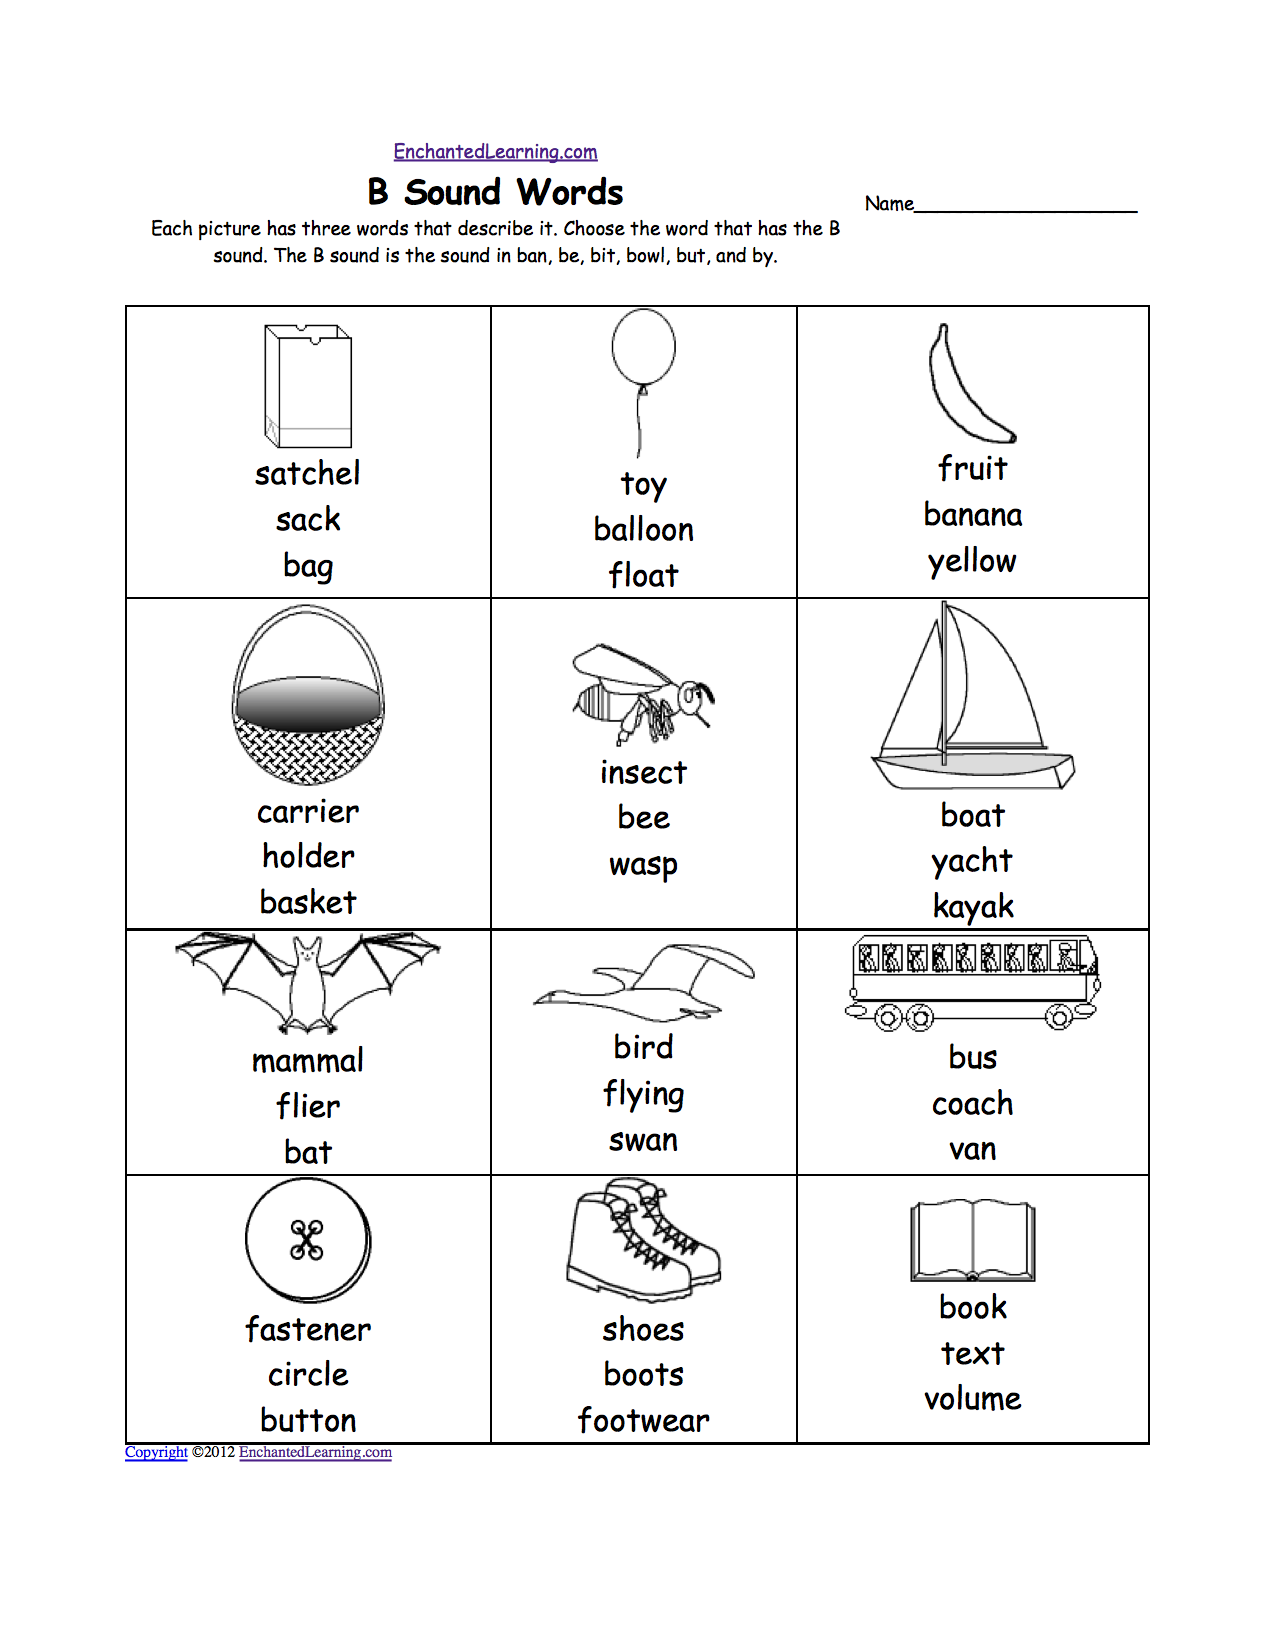 Aldiablosus  Unique Phonics Worksheets Multiple Choice Worksheets To Print  With Lovely Quotbquot Sound Phonics Worksheet Multiple Choice Each Picture Has Three Words That Describe It Choose The Word That Has A Quotbquot Sound The Quotbquot Sound Is The Sound  With Nice Handwriting Worksheets Kindergarten Free Printable Also Worksheets On Pronouns For Grade  In Addition Grade  Math Problem Solving Worksheets And Spelling Patterns Worksheets As Well As Free Worksheet For Grade  Additionally Visual Perception Worksheets Free From Enchantedlearningcom With Aldiablosus  Lovely Phonics Worksheets Multiple Choice Worksheets To Print  With Nice Quotbquot Sound Phonics Worksheet Multiple Choice Each Picture Has Three Words That Describe It Choose The Word That Has A Quotbquot Sound The Quotbquot Sound Is The Sound  And Unique Handwriting Worksheets Kindergarten Free Printable Also Worksheets On Pronouns For Grade  In Addition Grade  Math Problem Solving Worksheets From Enchantedlearningcom